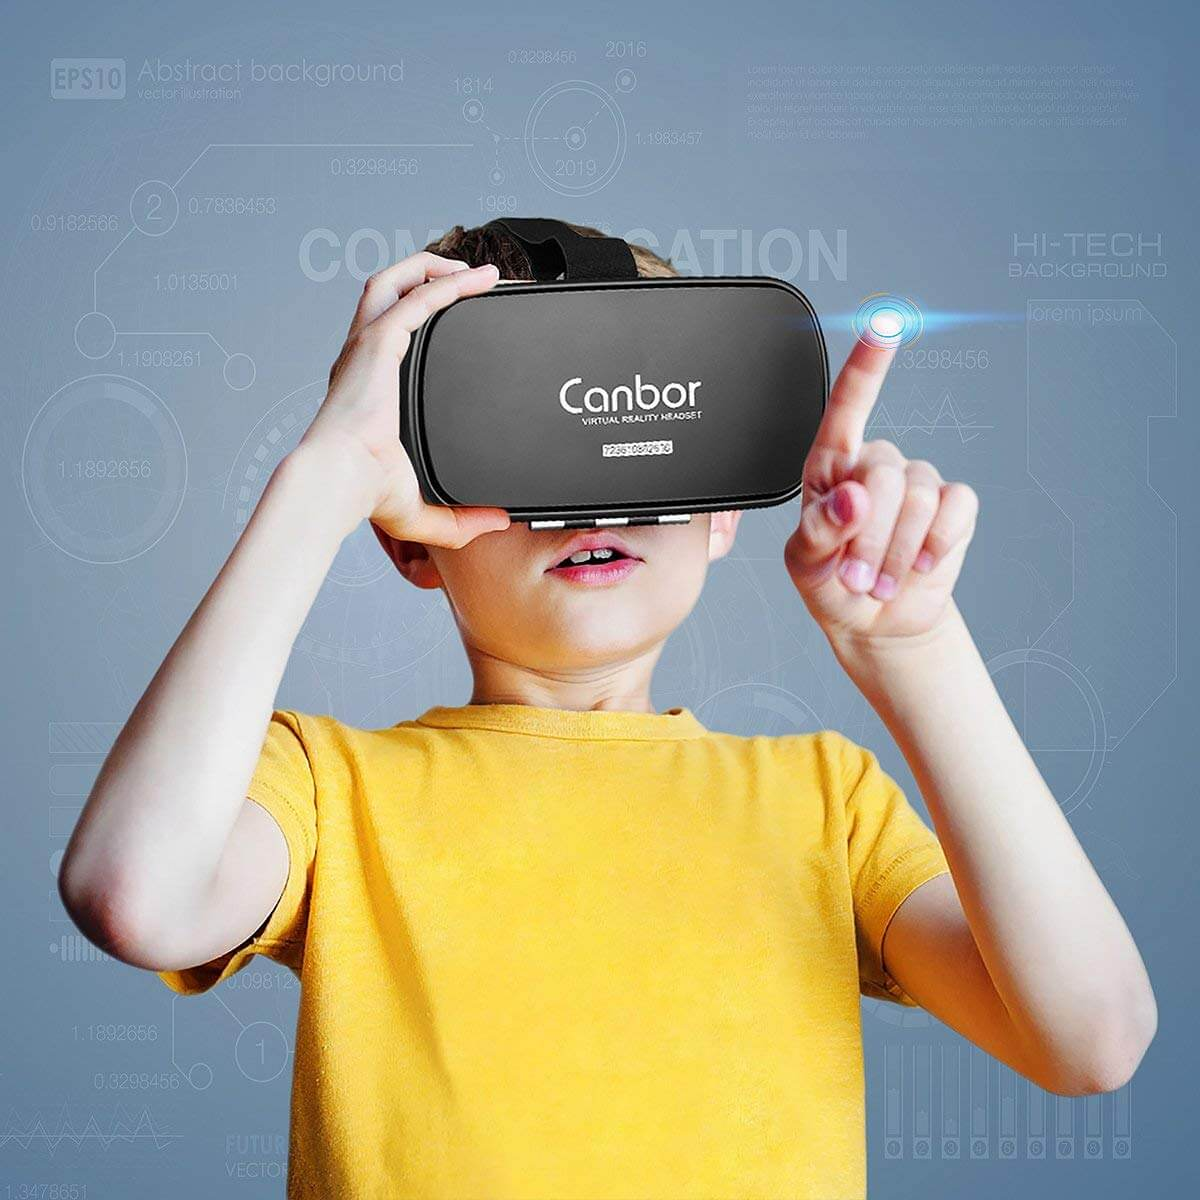 Canbor Virtual Reality Headset Full Review With Pros And Cons